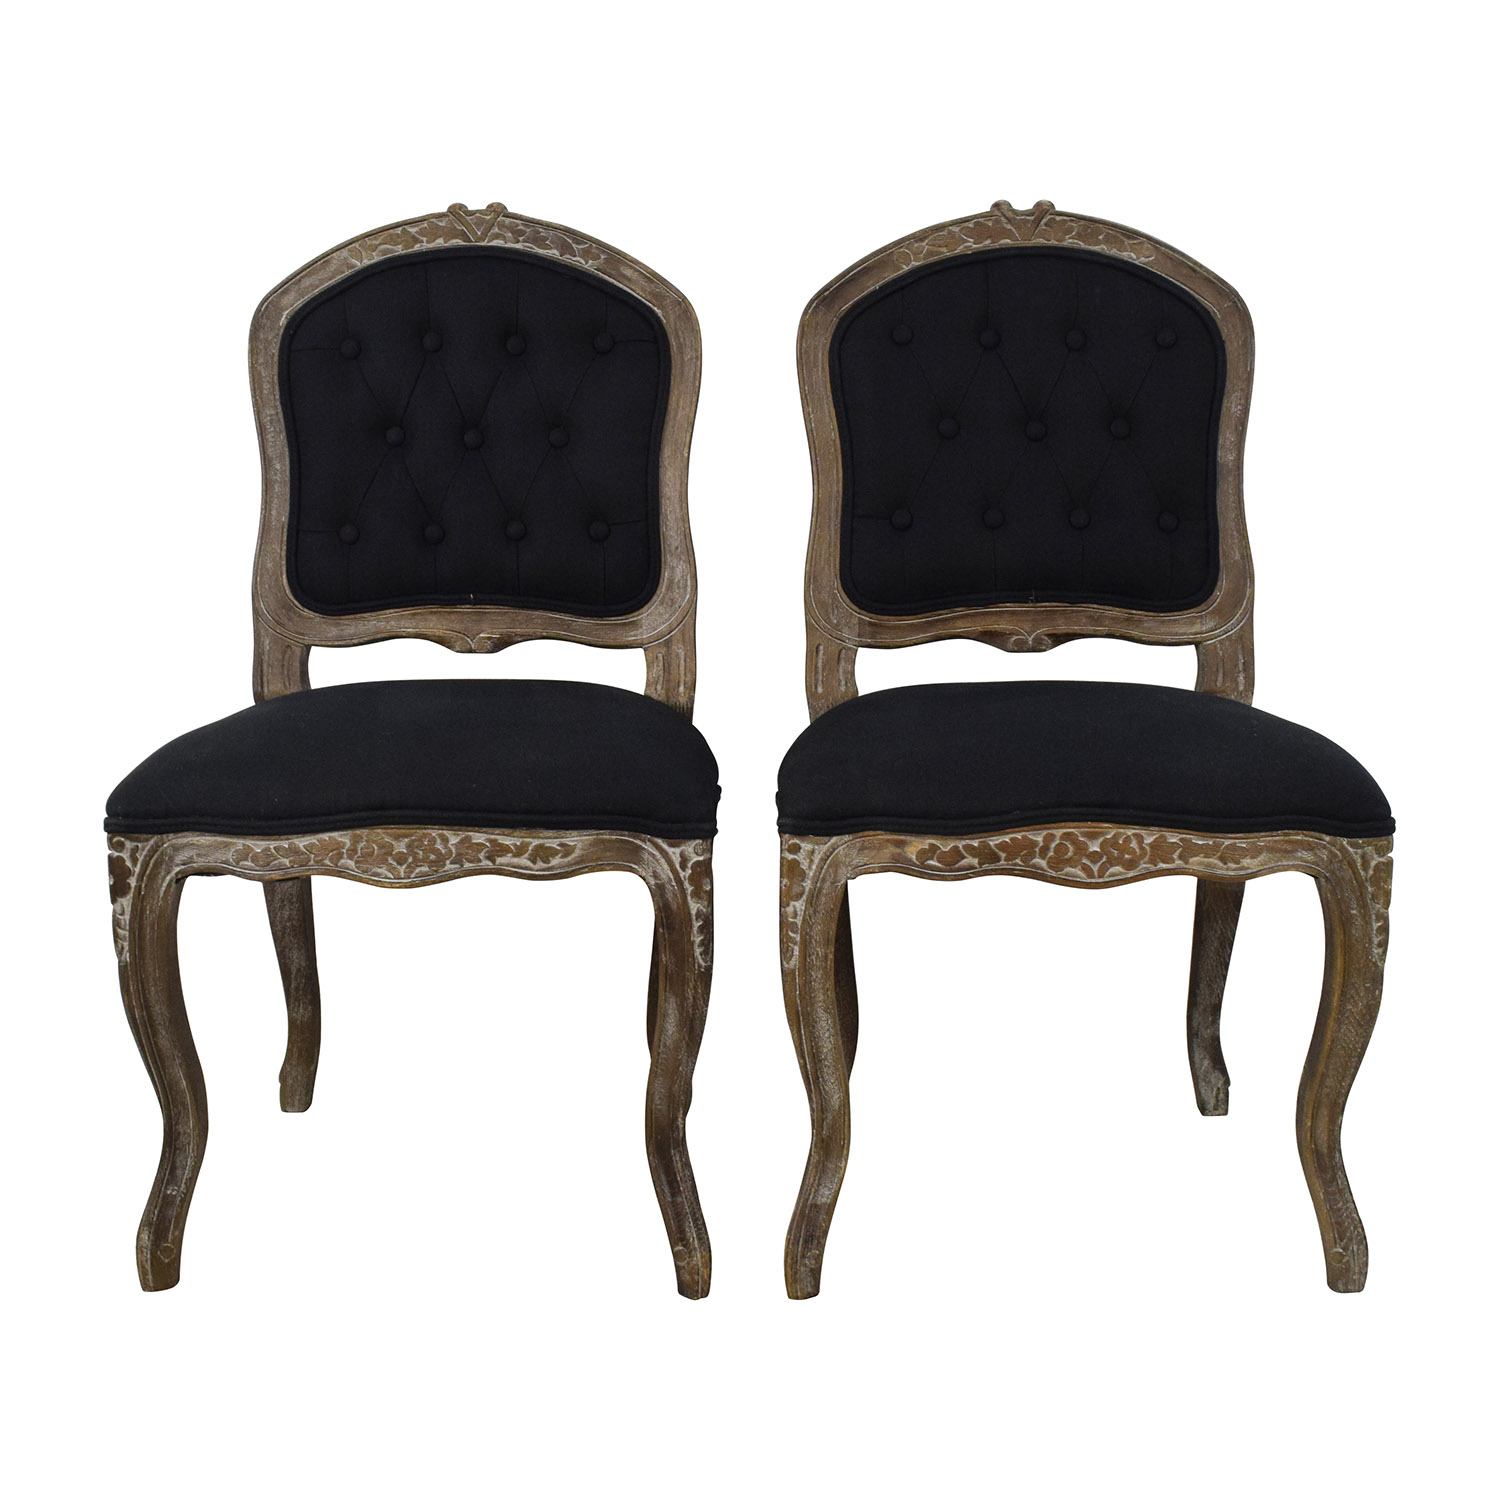 shop Safavieh Carissa Country French Brown Tufted Chairs Safavieh